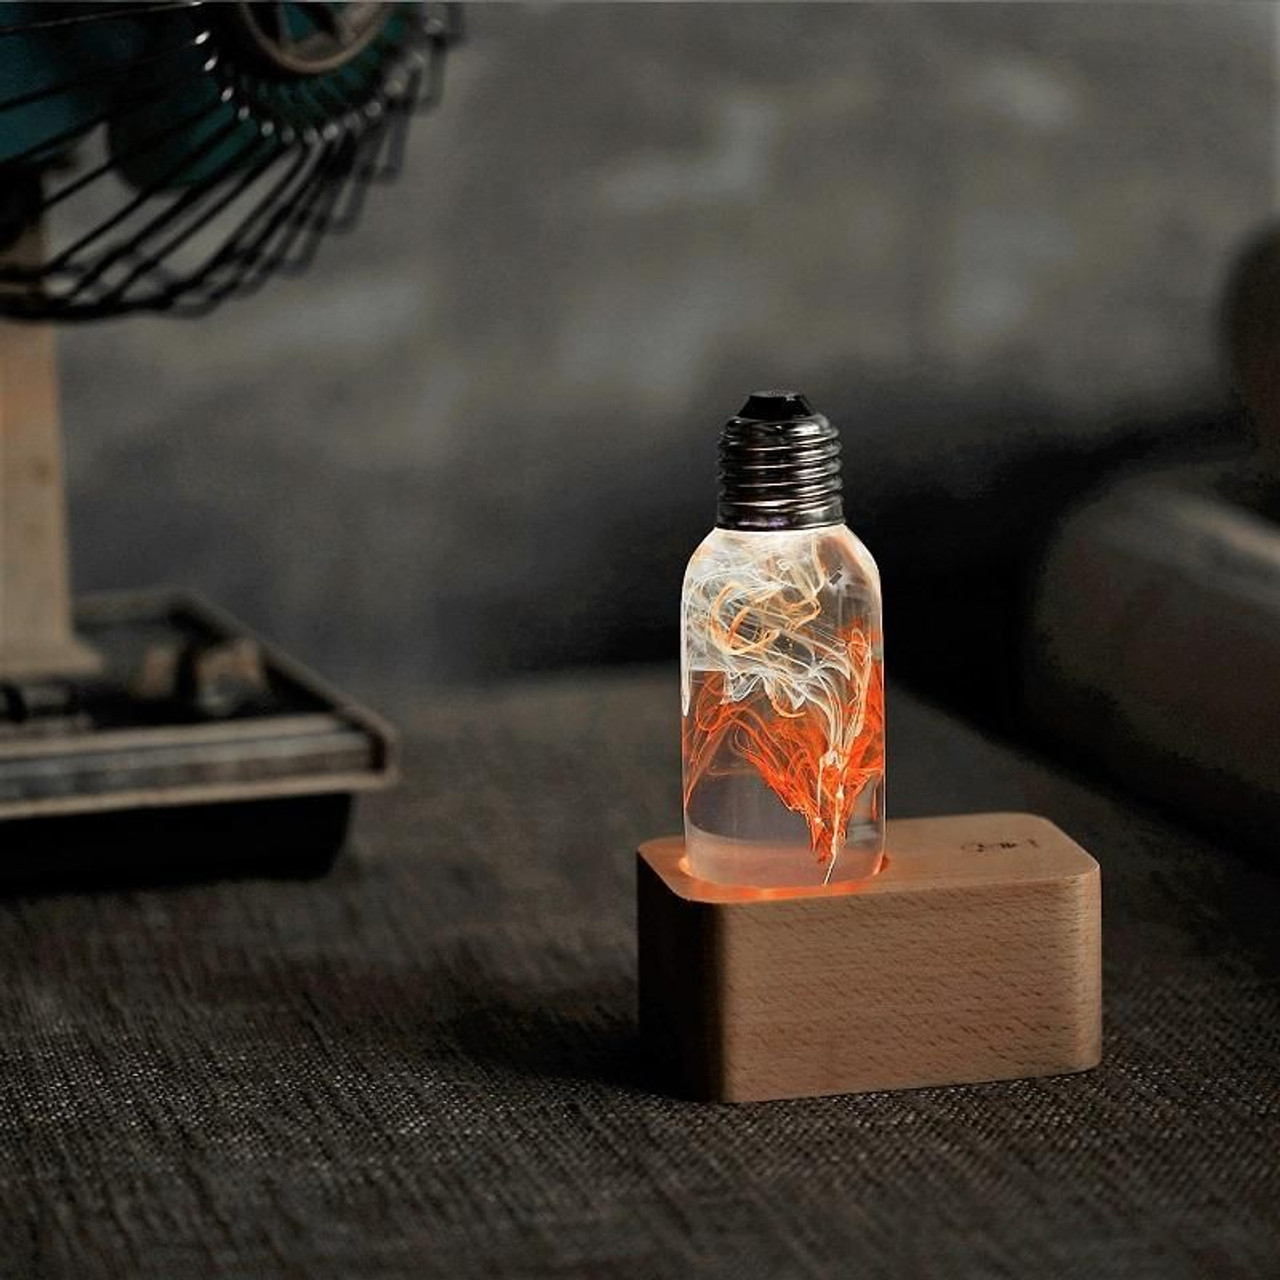 EP Light Tango Orange and White Bulb Art Fixture Lamp with Optional Modern or Vintage Base Stand